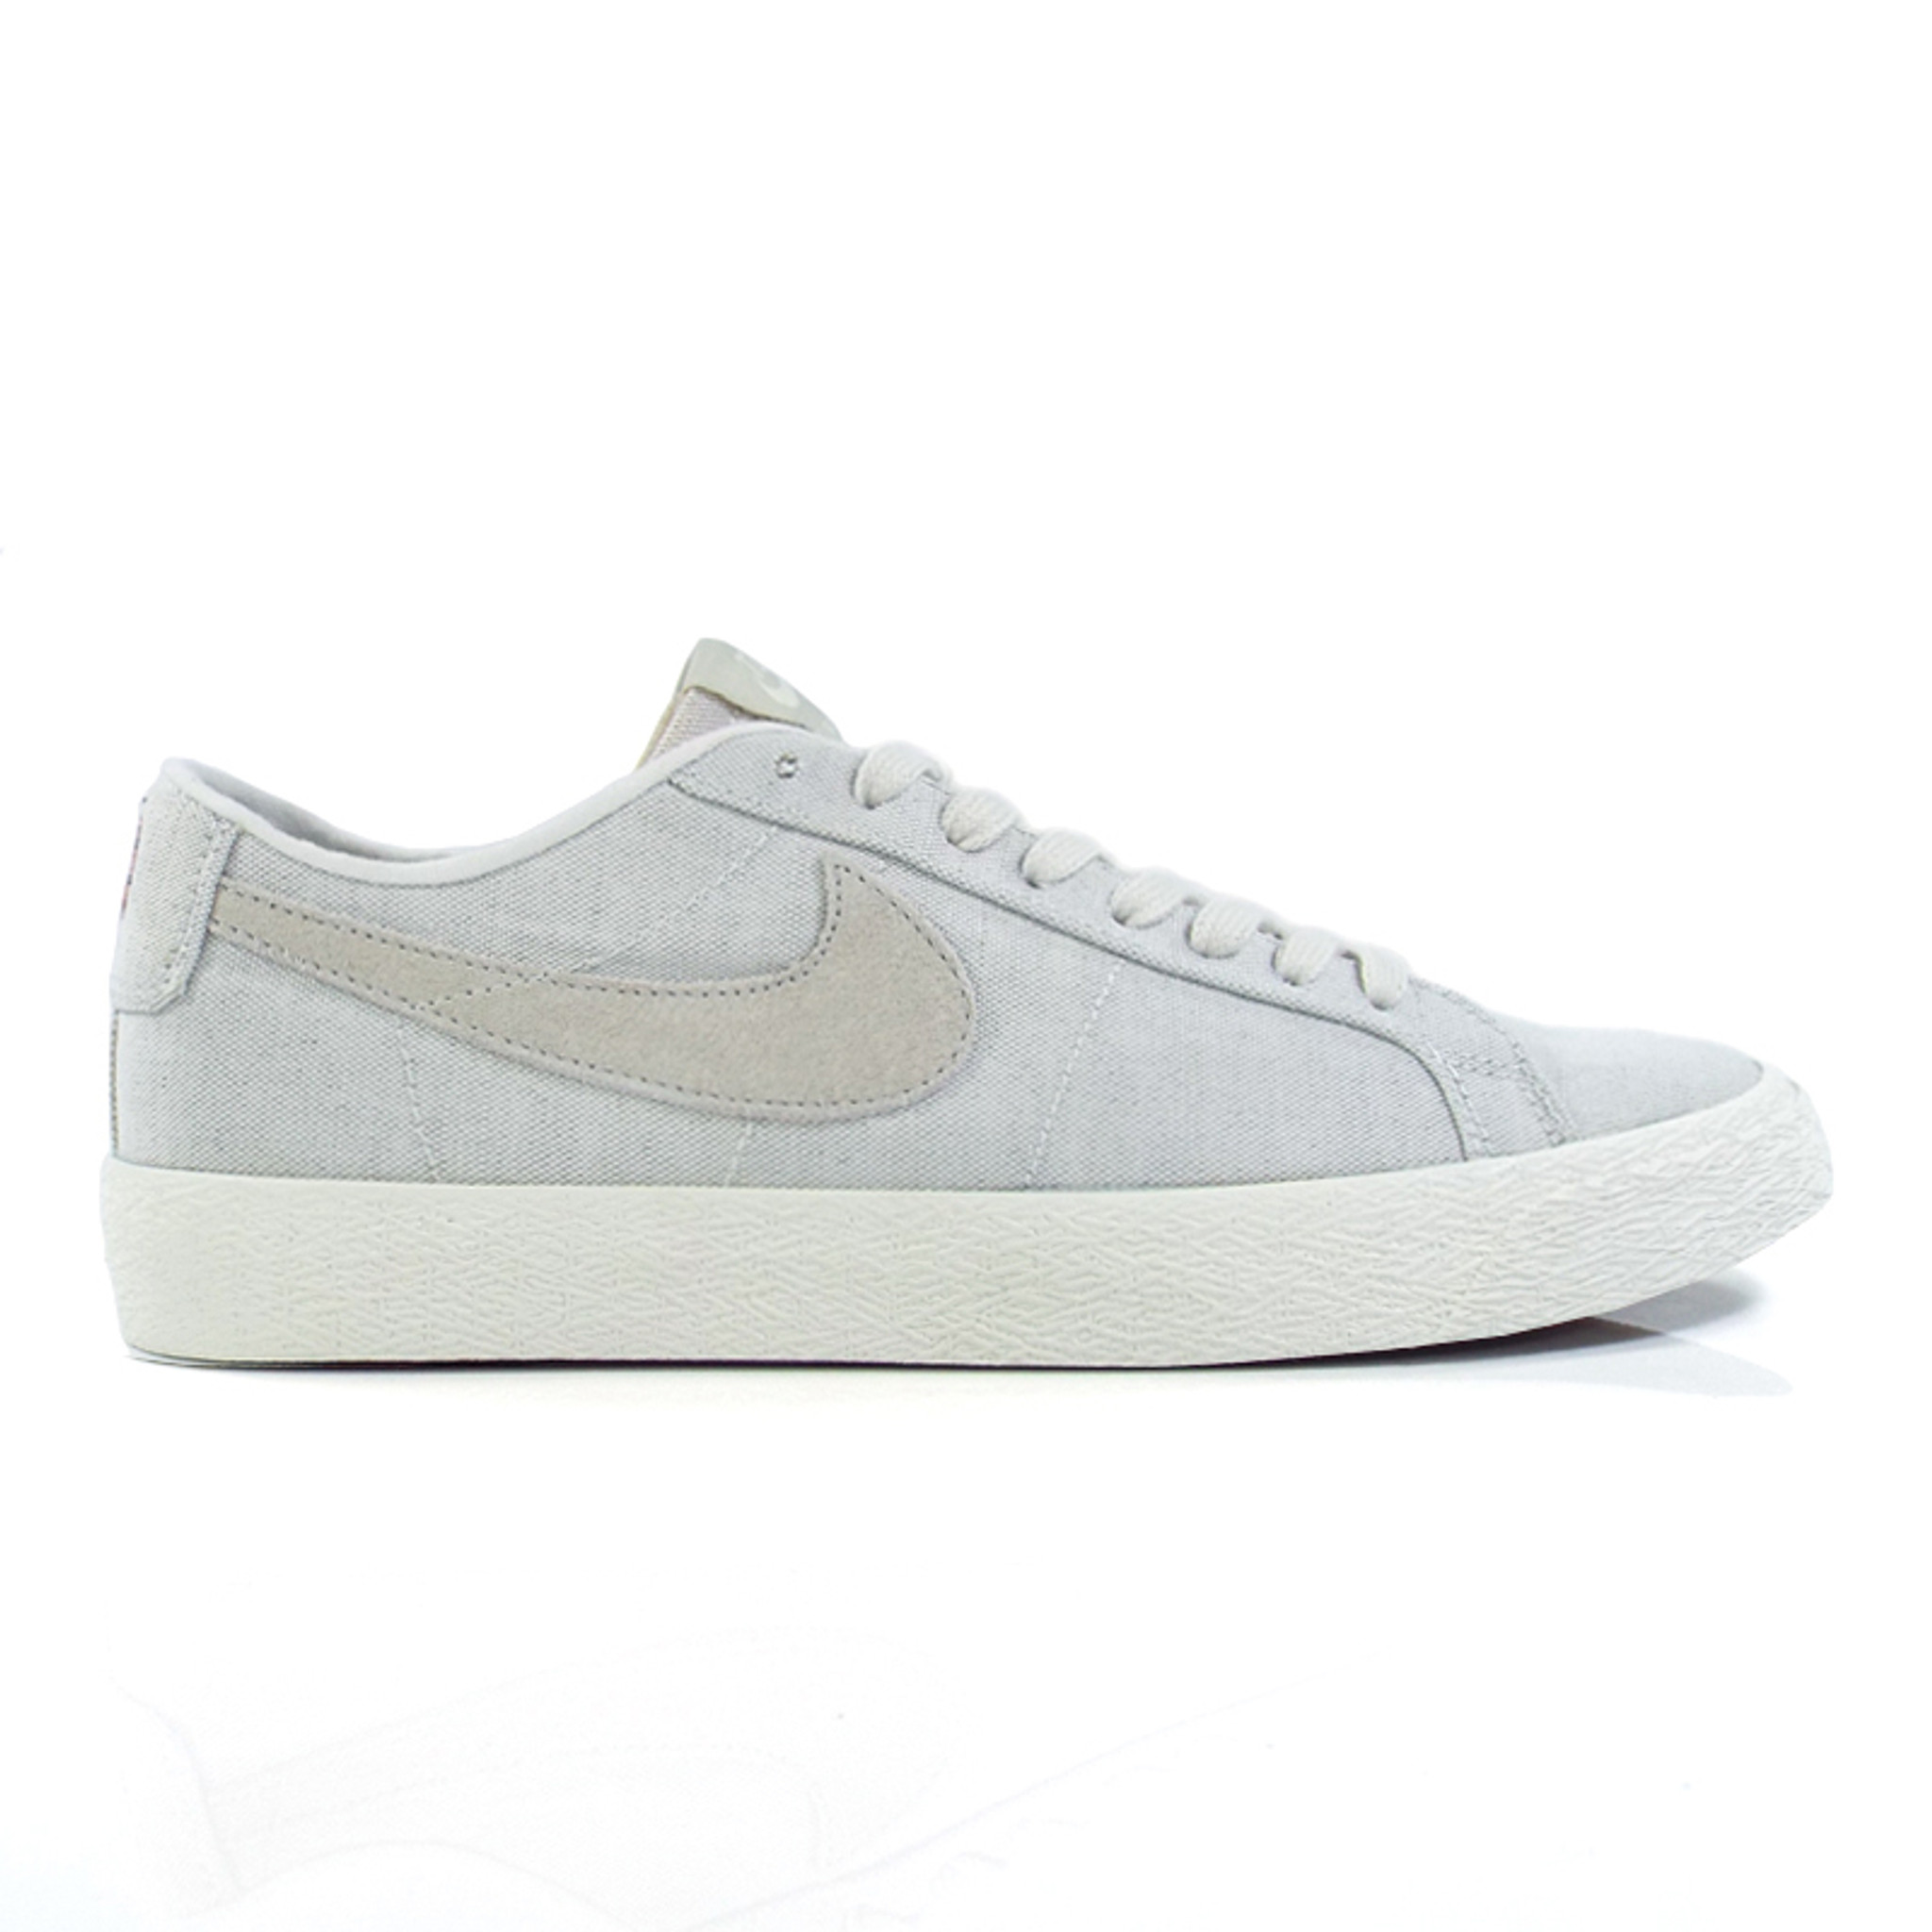 first look outlet on sale cute cheap Nike SB Zoom Blazer Low Canvas Decon Shoes - Phantom/Light Bone-Habanero Red